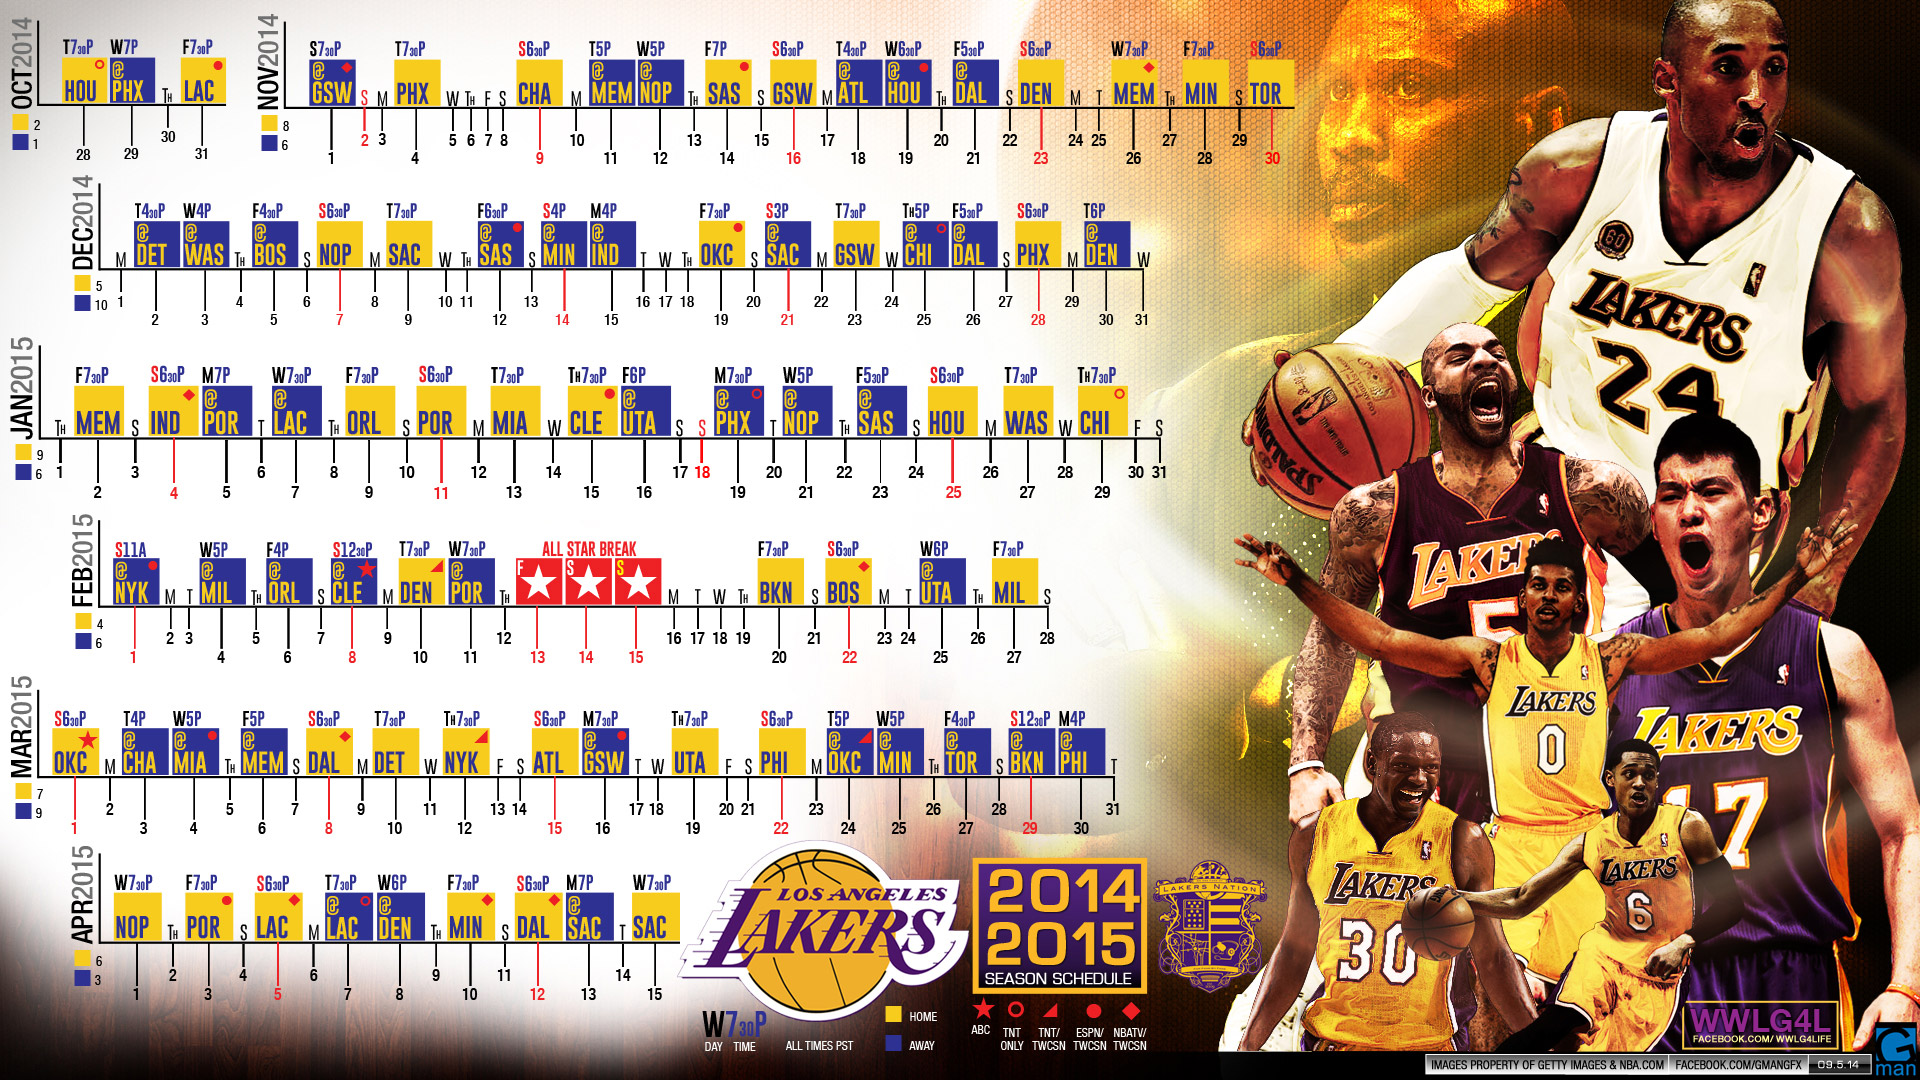 La lakers 2014 2015 schedule wallpaper basketball wallpapers at la lakers 2014 2015 schedule wallpaper voltagebd Image collections